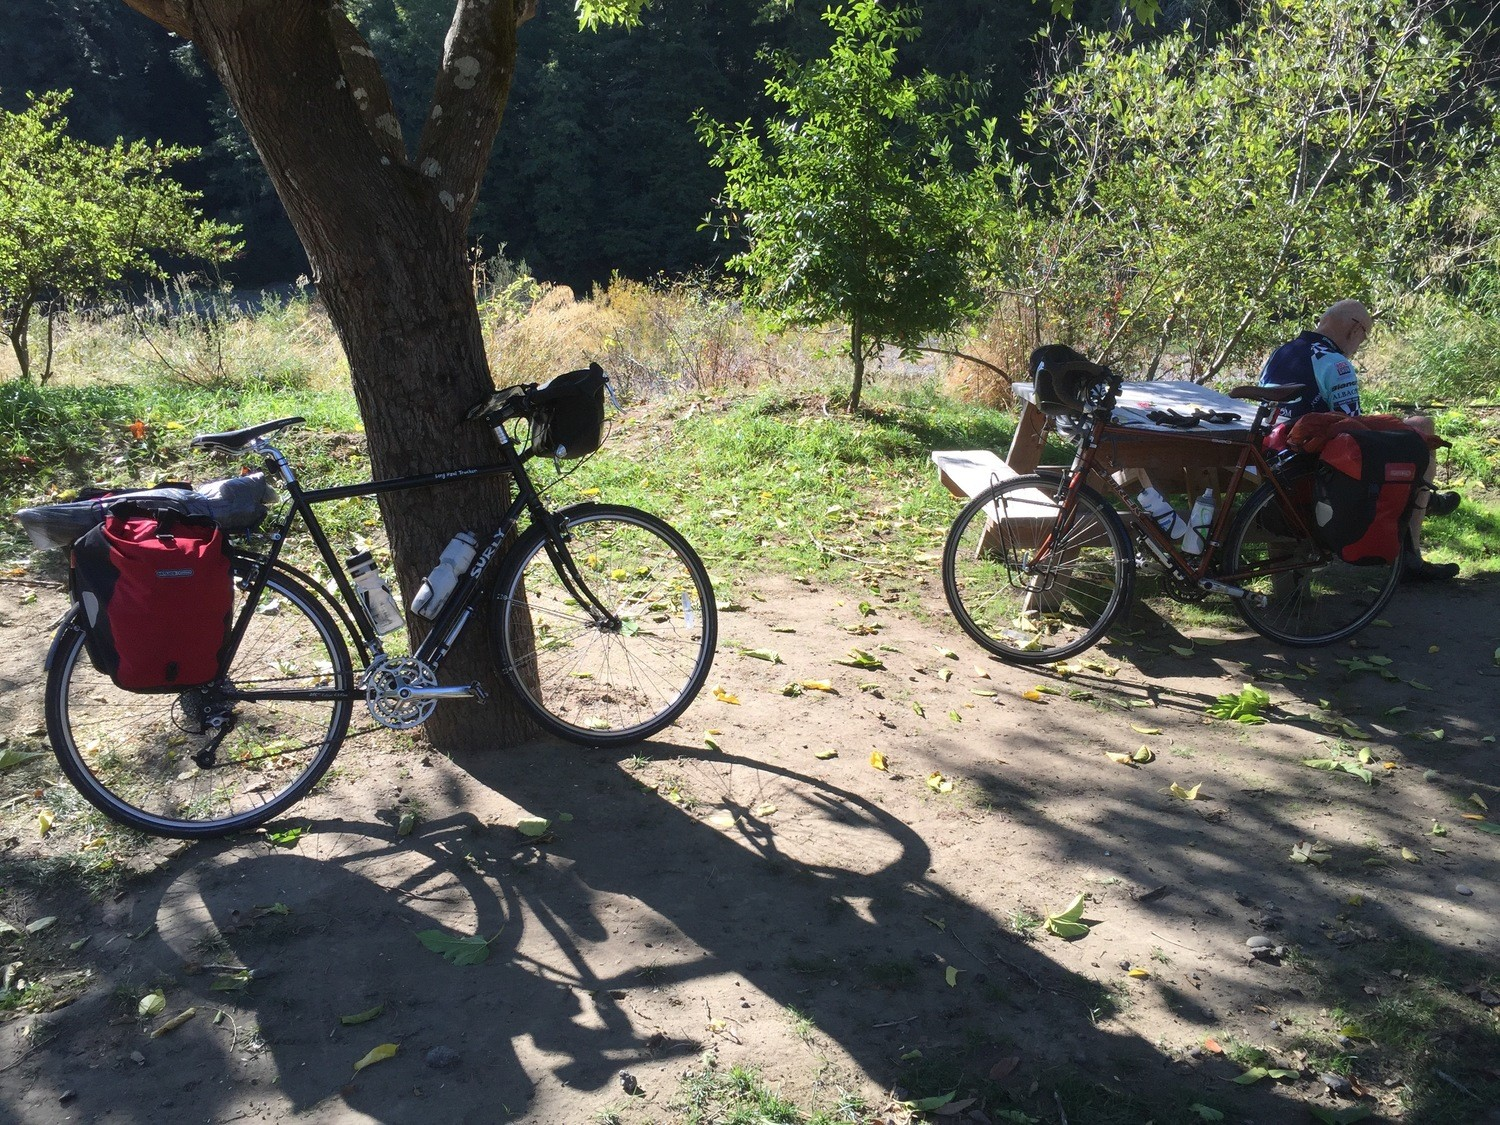 The Surly Long Haul Trucker and the Trek 520 at a campground on the Pacific Coast Route.